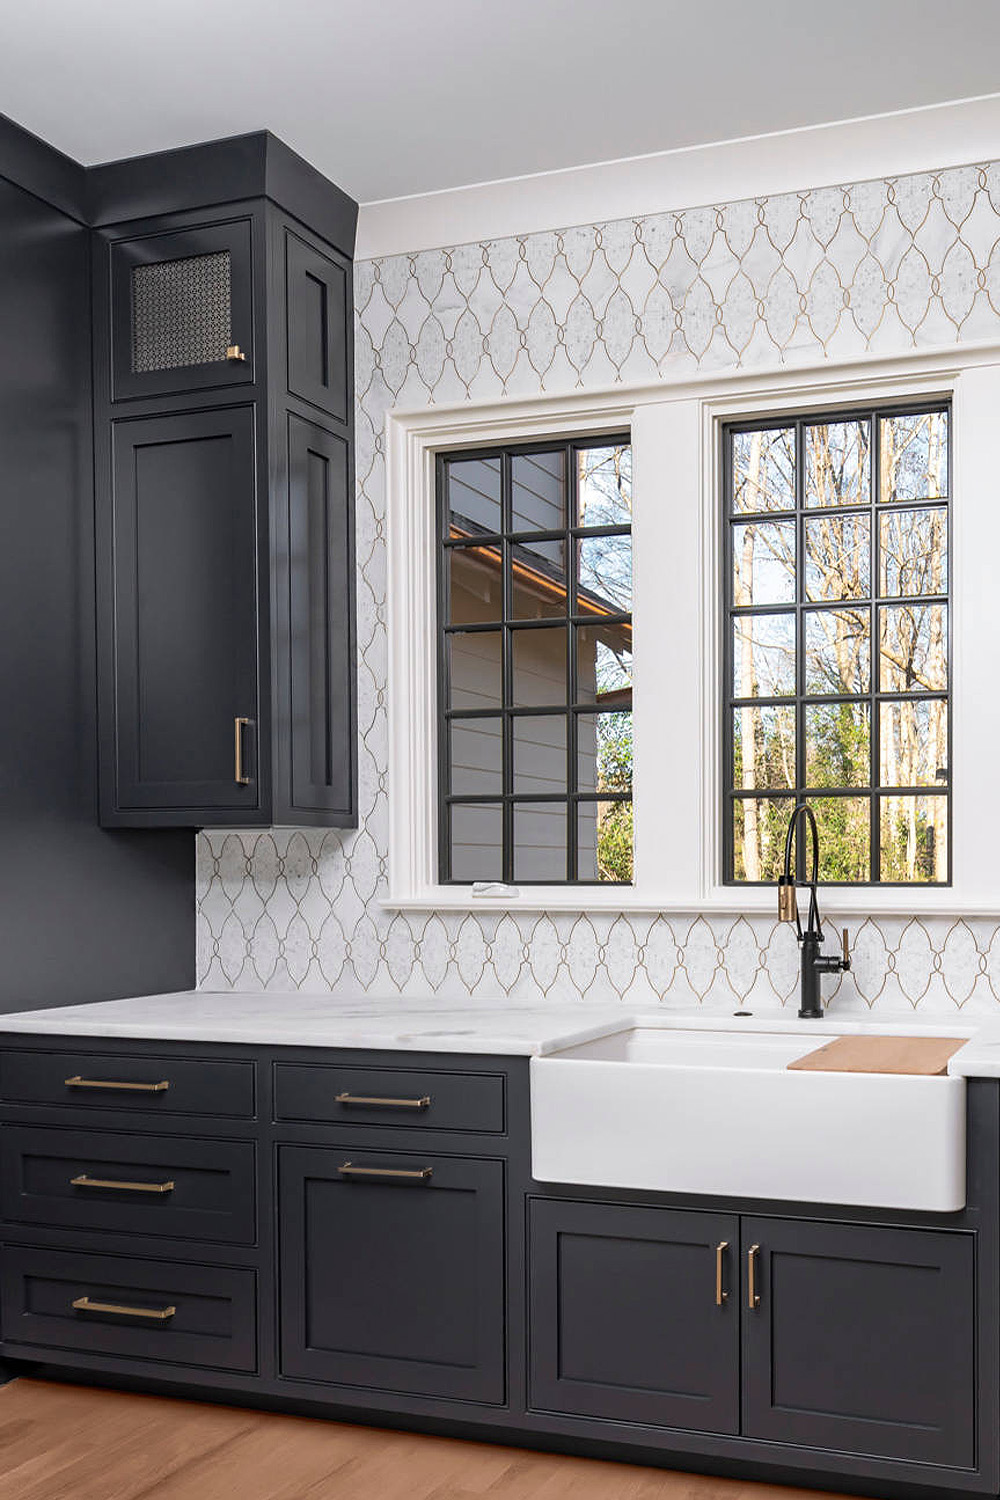 39 Black Kitchen Cabinet Ideas Entering The Dark Side